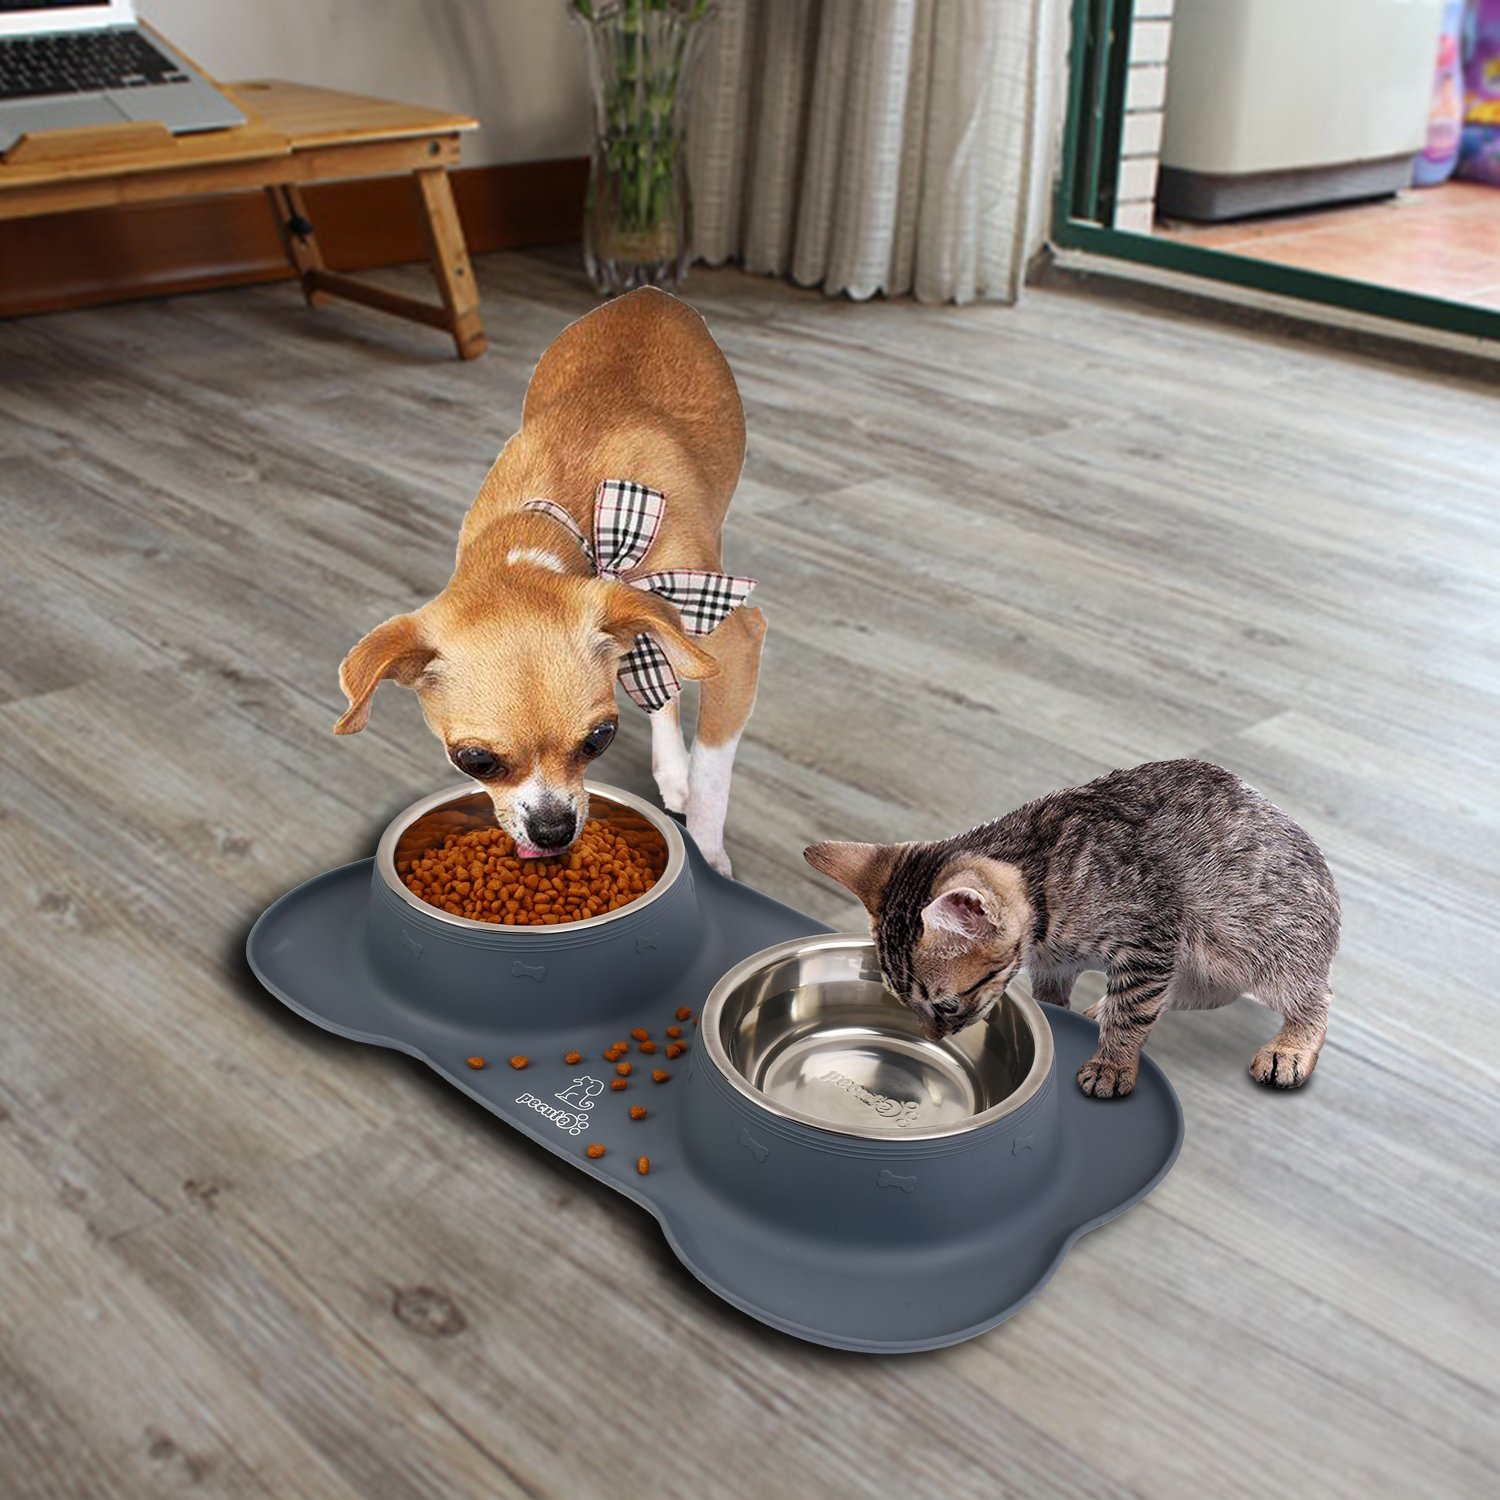 Pecute Dog Bowls, Pet Dog Food Dish with Spill Proof & Non-Skid Mat, Stainless Steel Double Dog Water Bowl for Small/Medium Dogs Cat,12oz